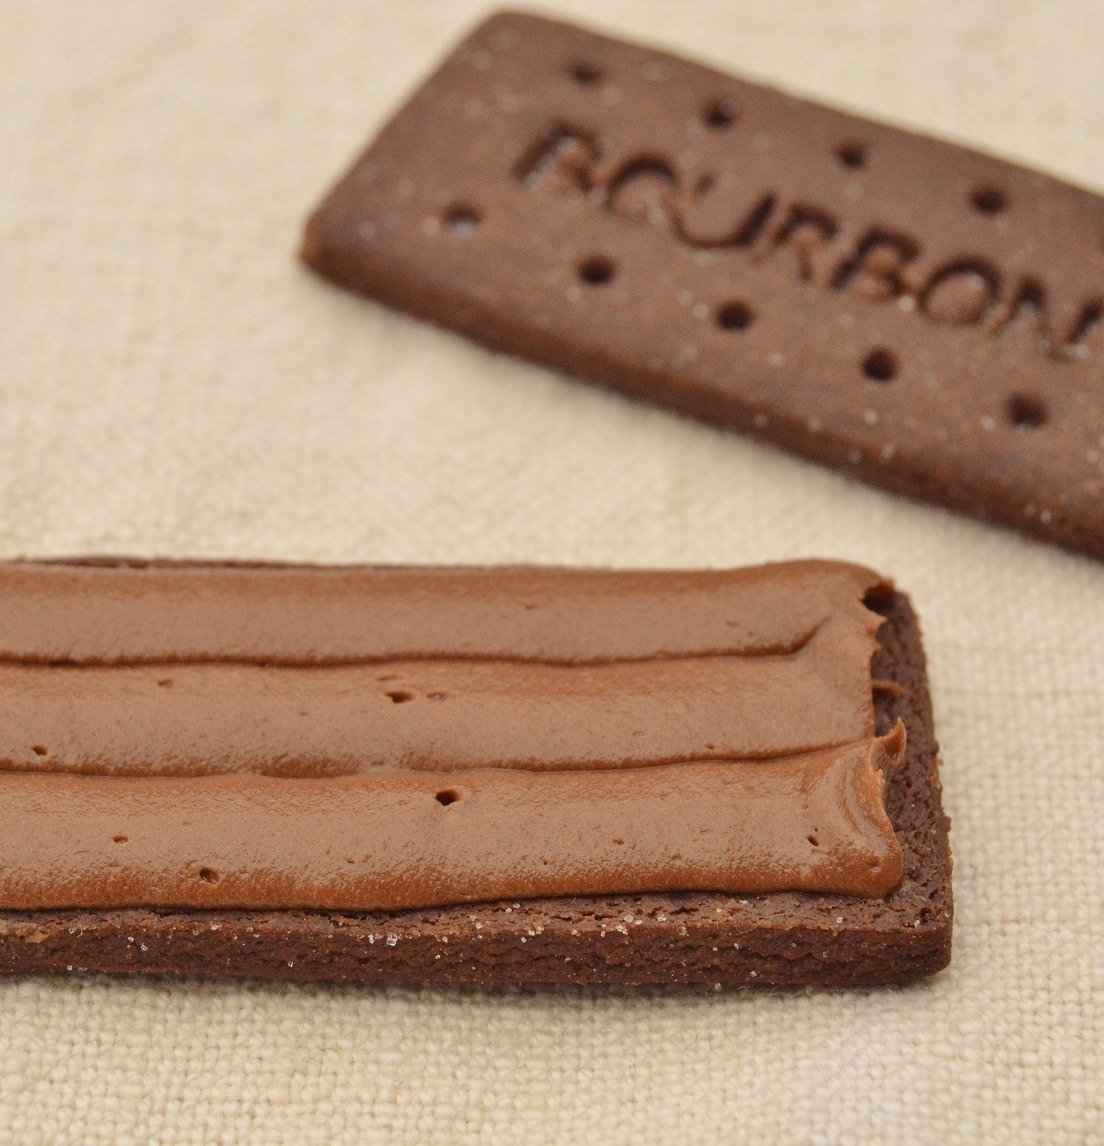 bourbon biscuits 4 Man Finally Extracts Intact Bourbon Biscuit Filling After 29 Years Of Trying, Internet Goes Wild